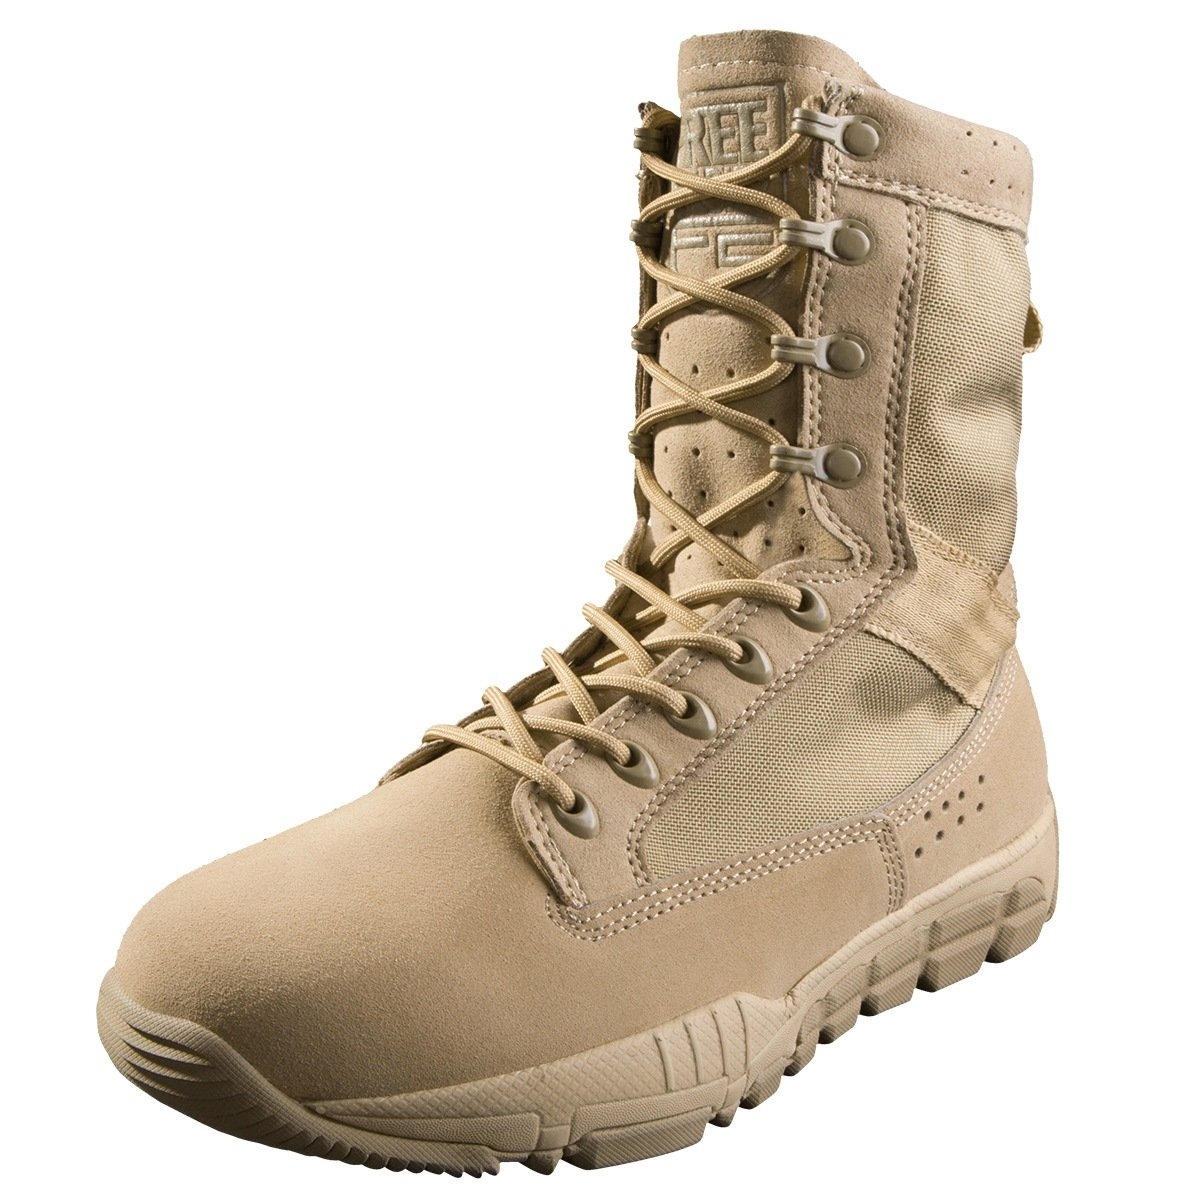 FREE SOLDIER Tactical Boots 8 Inch Desert Shoes High Ankle Support Military Boots(Tan 12)